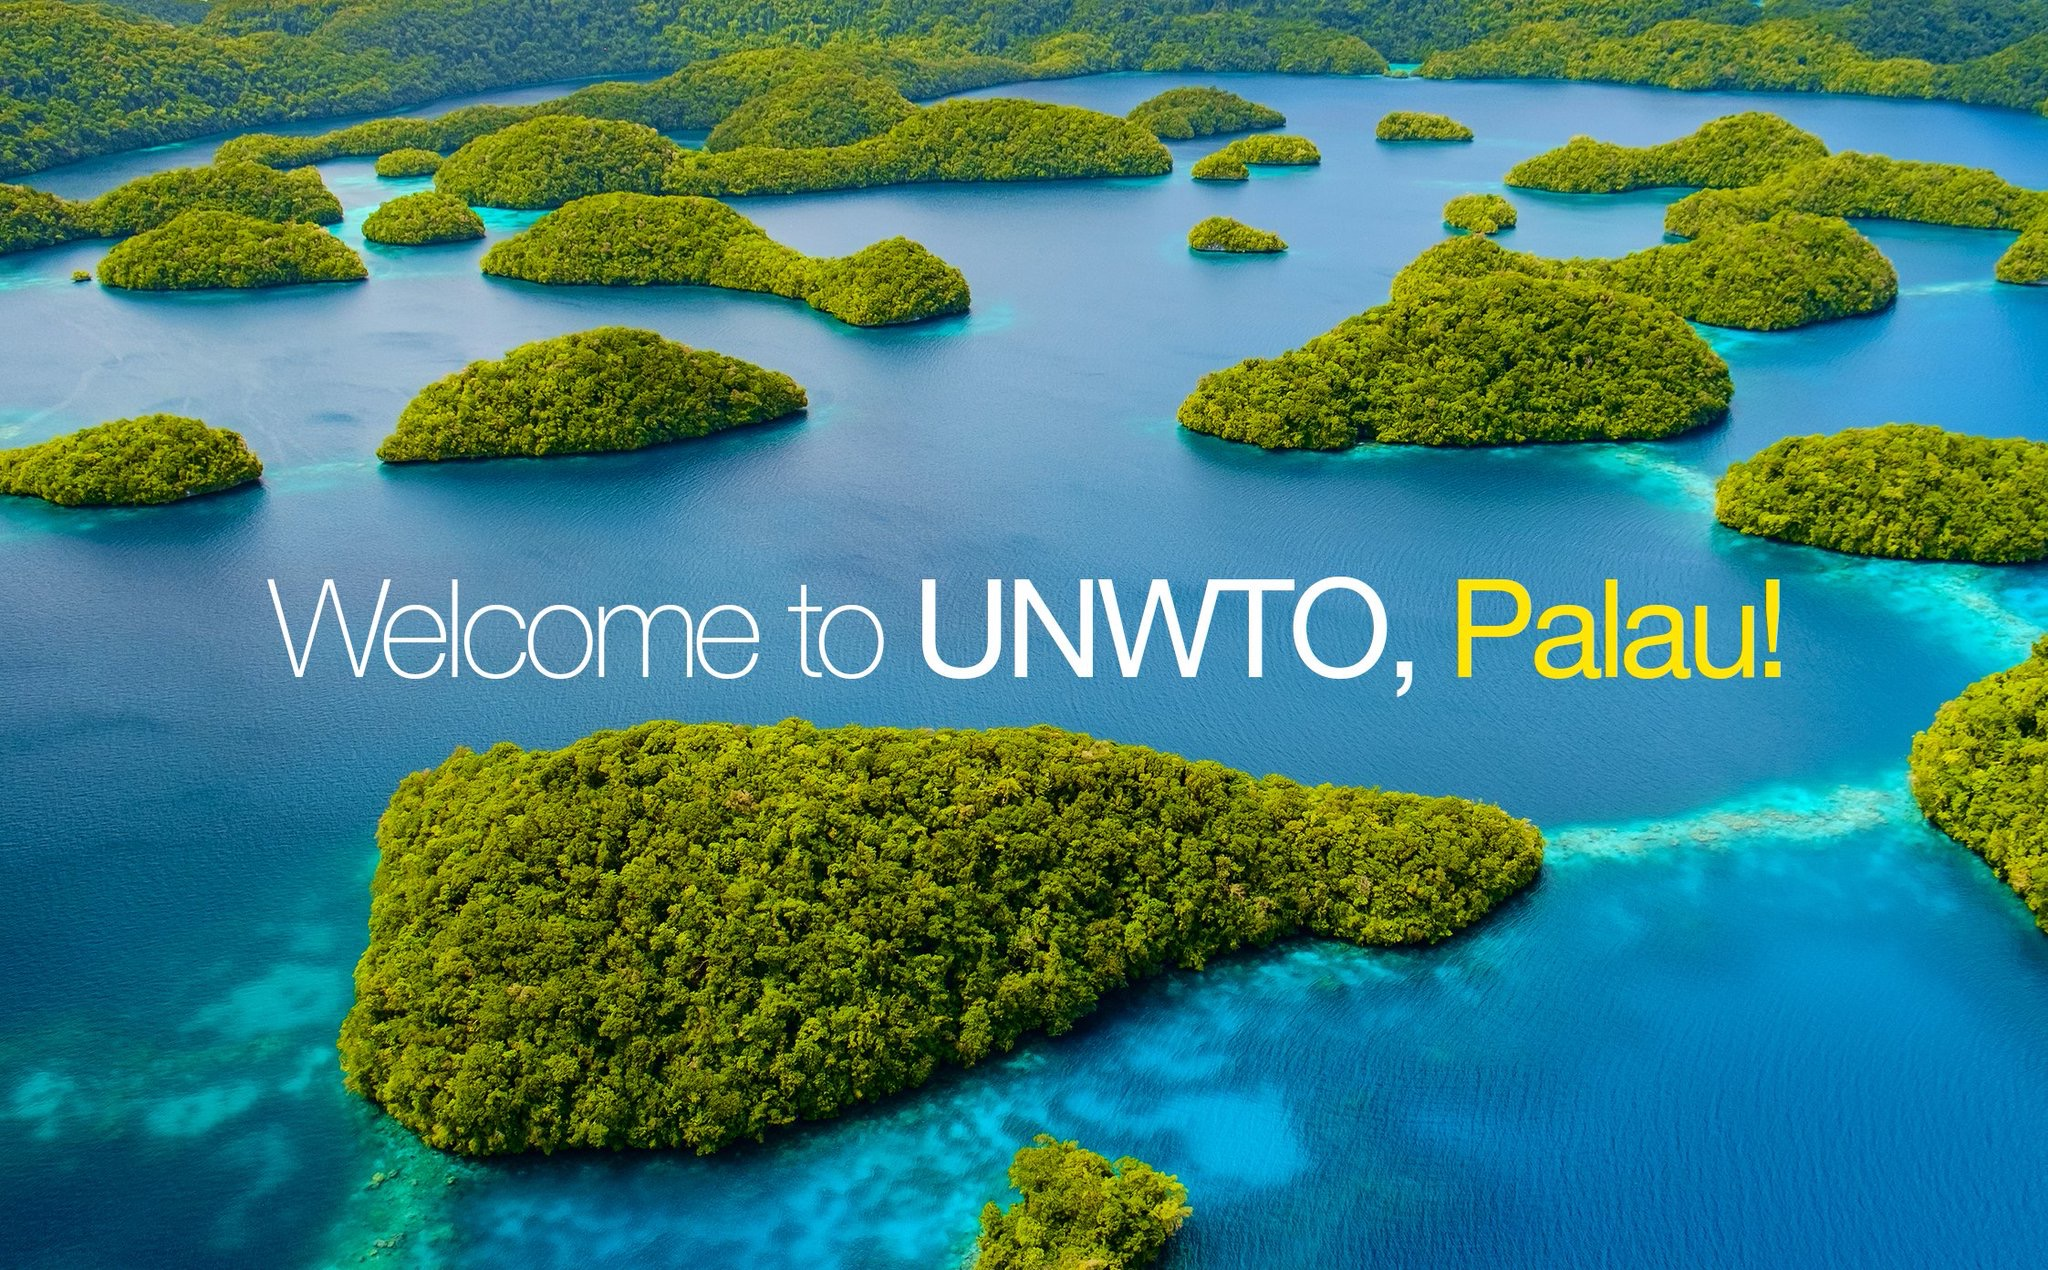 Palau joins UNWTO